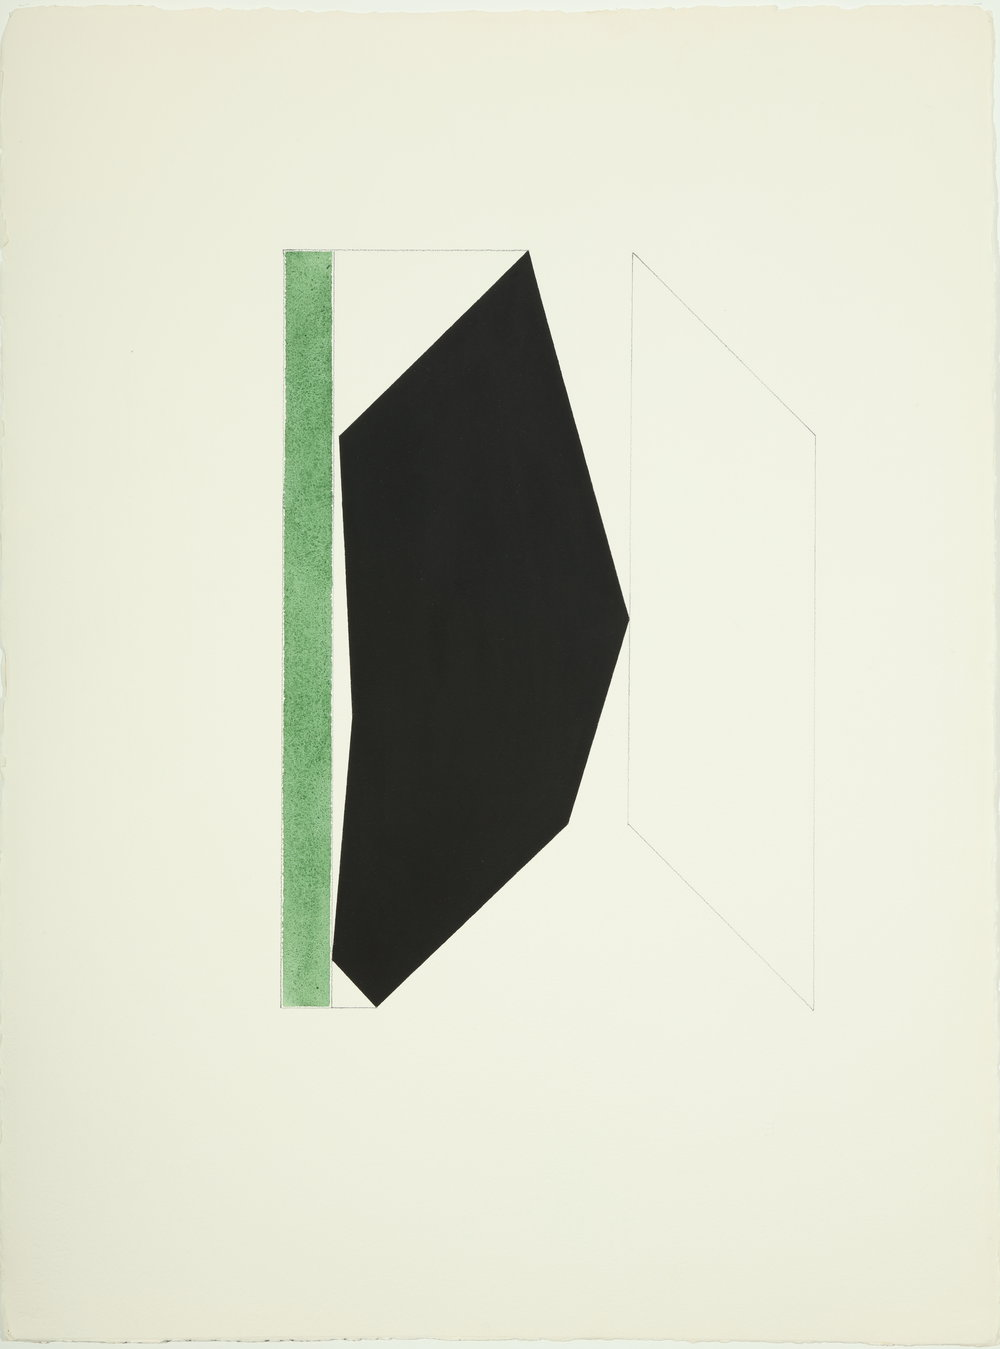 Big Bear , 1977 - 1978     Acrylic and pencil on paper 30.25H x 22.625W inches unframed $5,000 unframed $5,484 framed